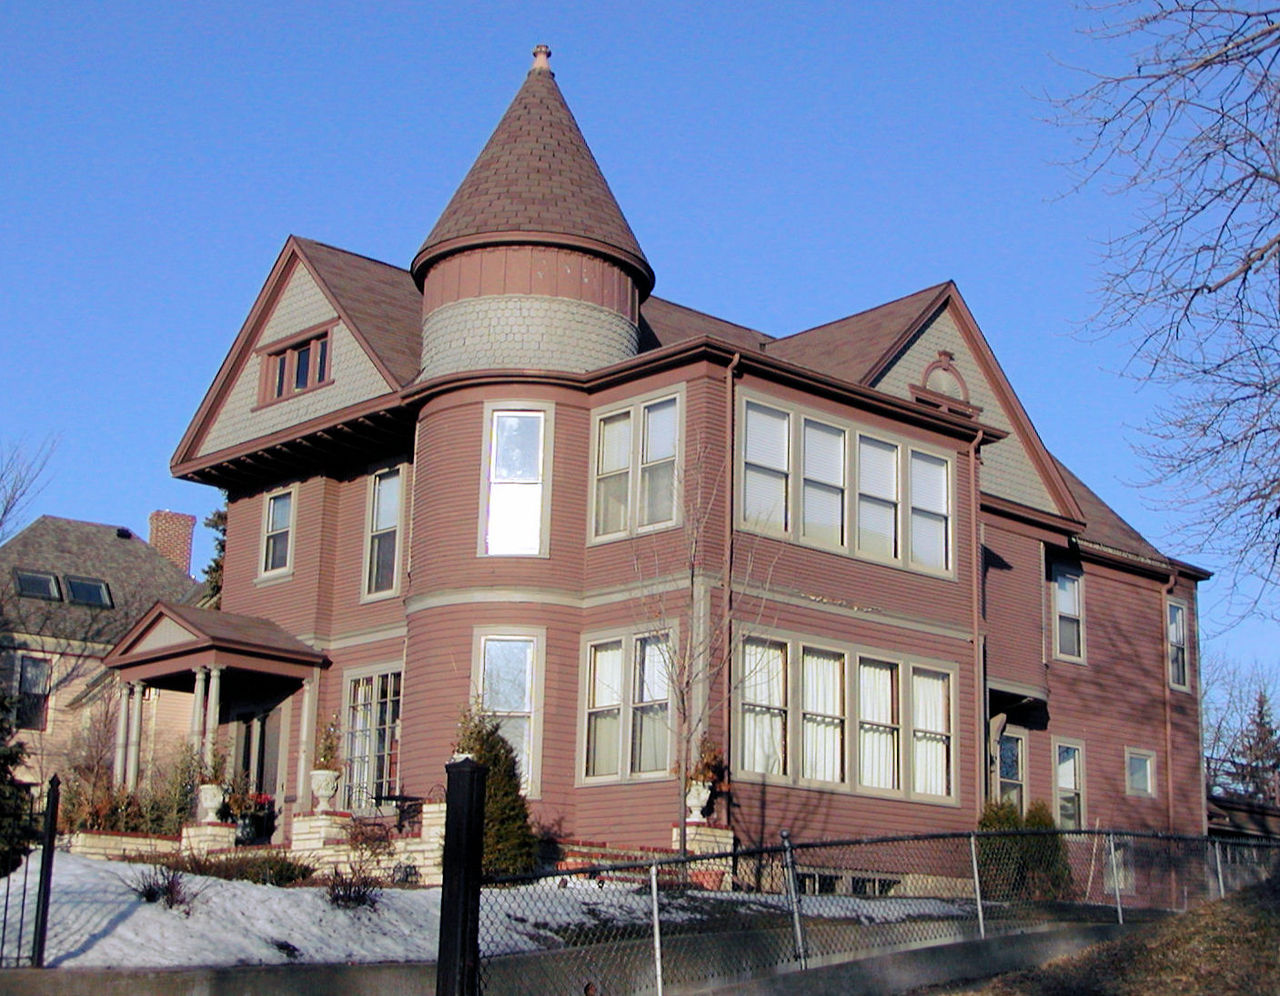 The Andrew R. McGill House was built in 1888 by its namesake, who served as governor from 1887-1889.